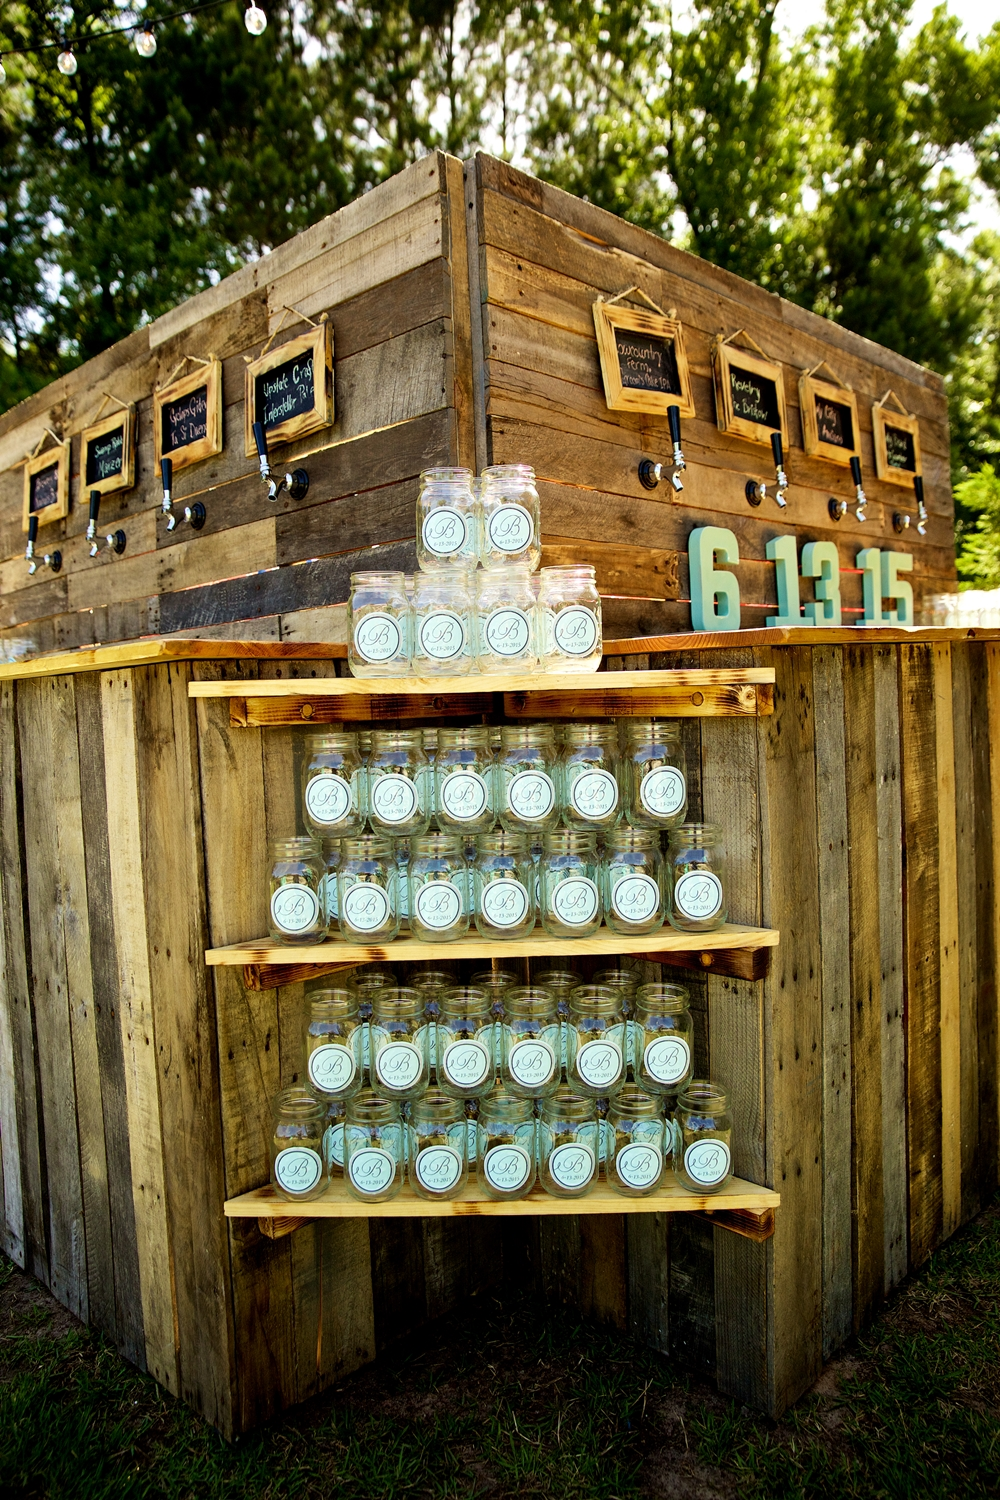 Beers on Tap from Revelry Brewing Co. at Christine Kohler + Brook Bristow's Summer Old Wide Awake Plantation wedding in Charleston, Sc